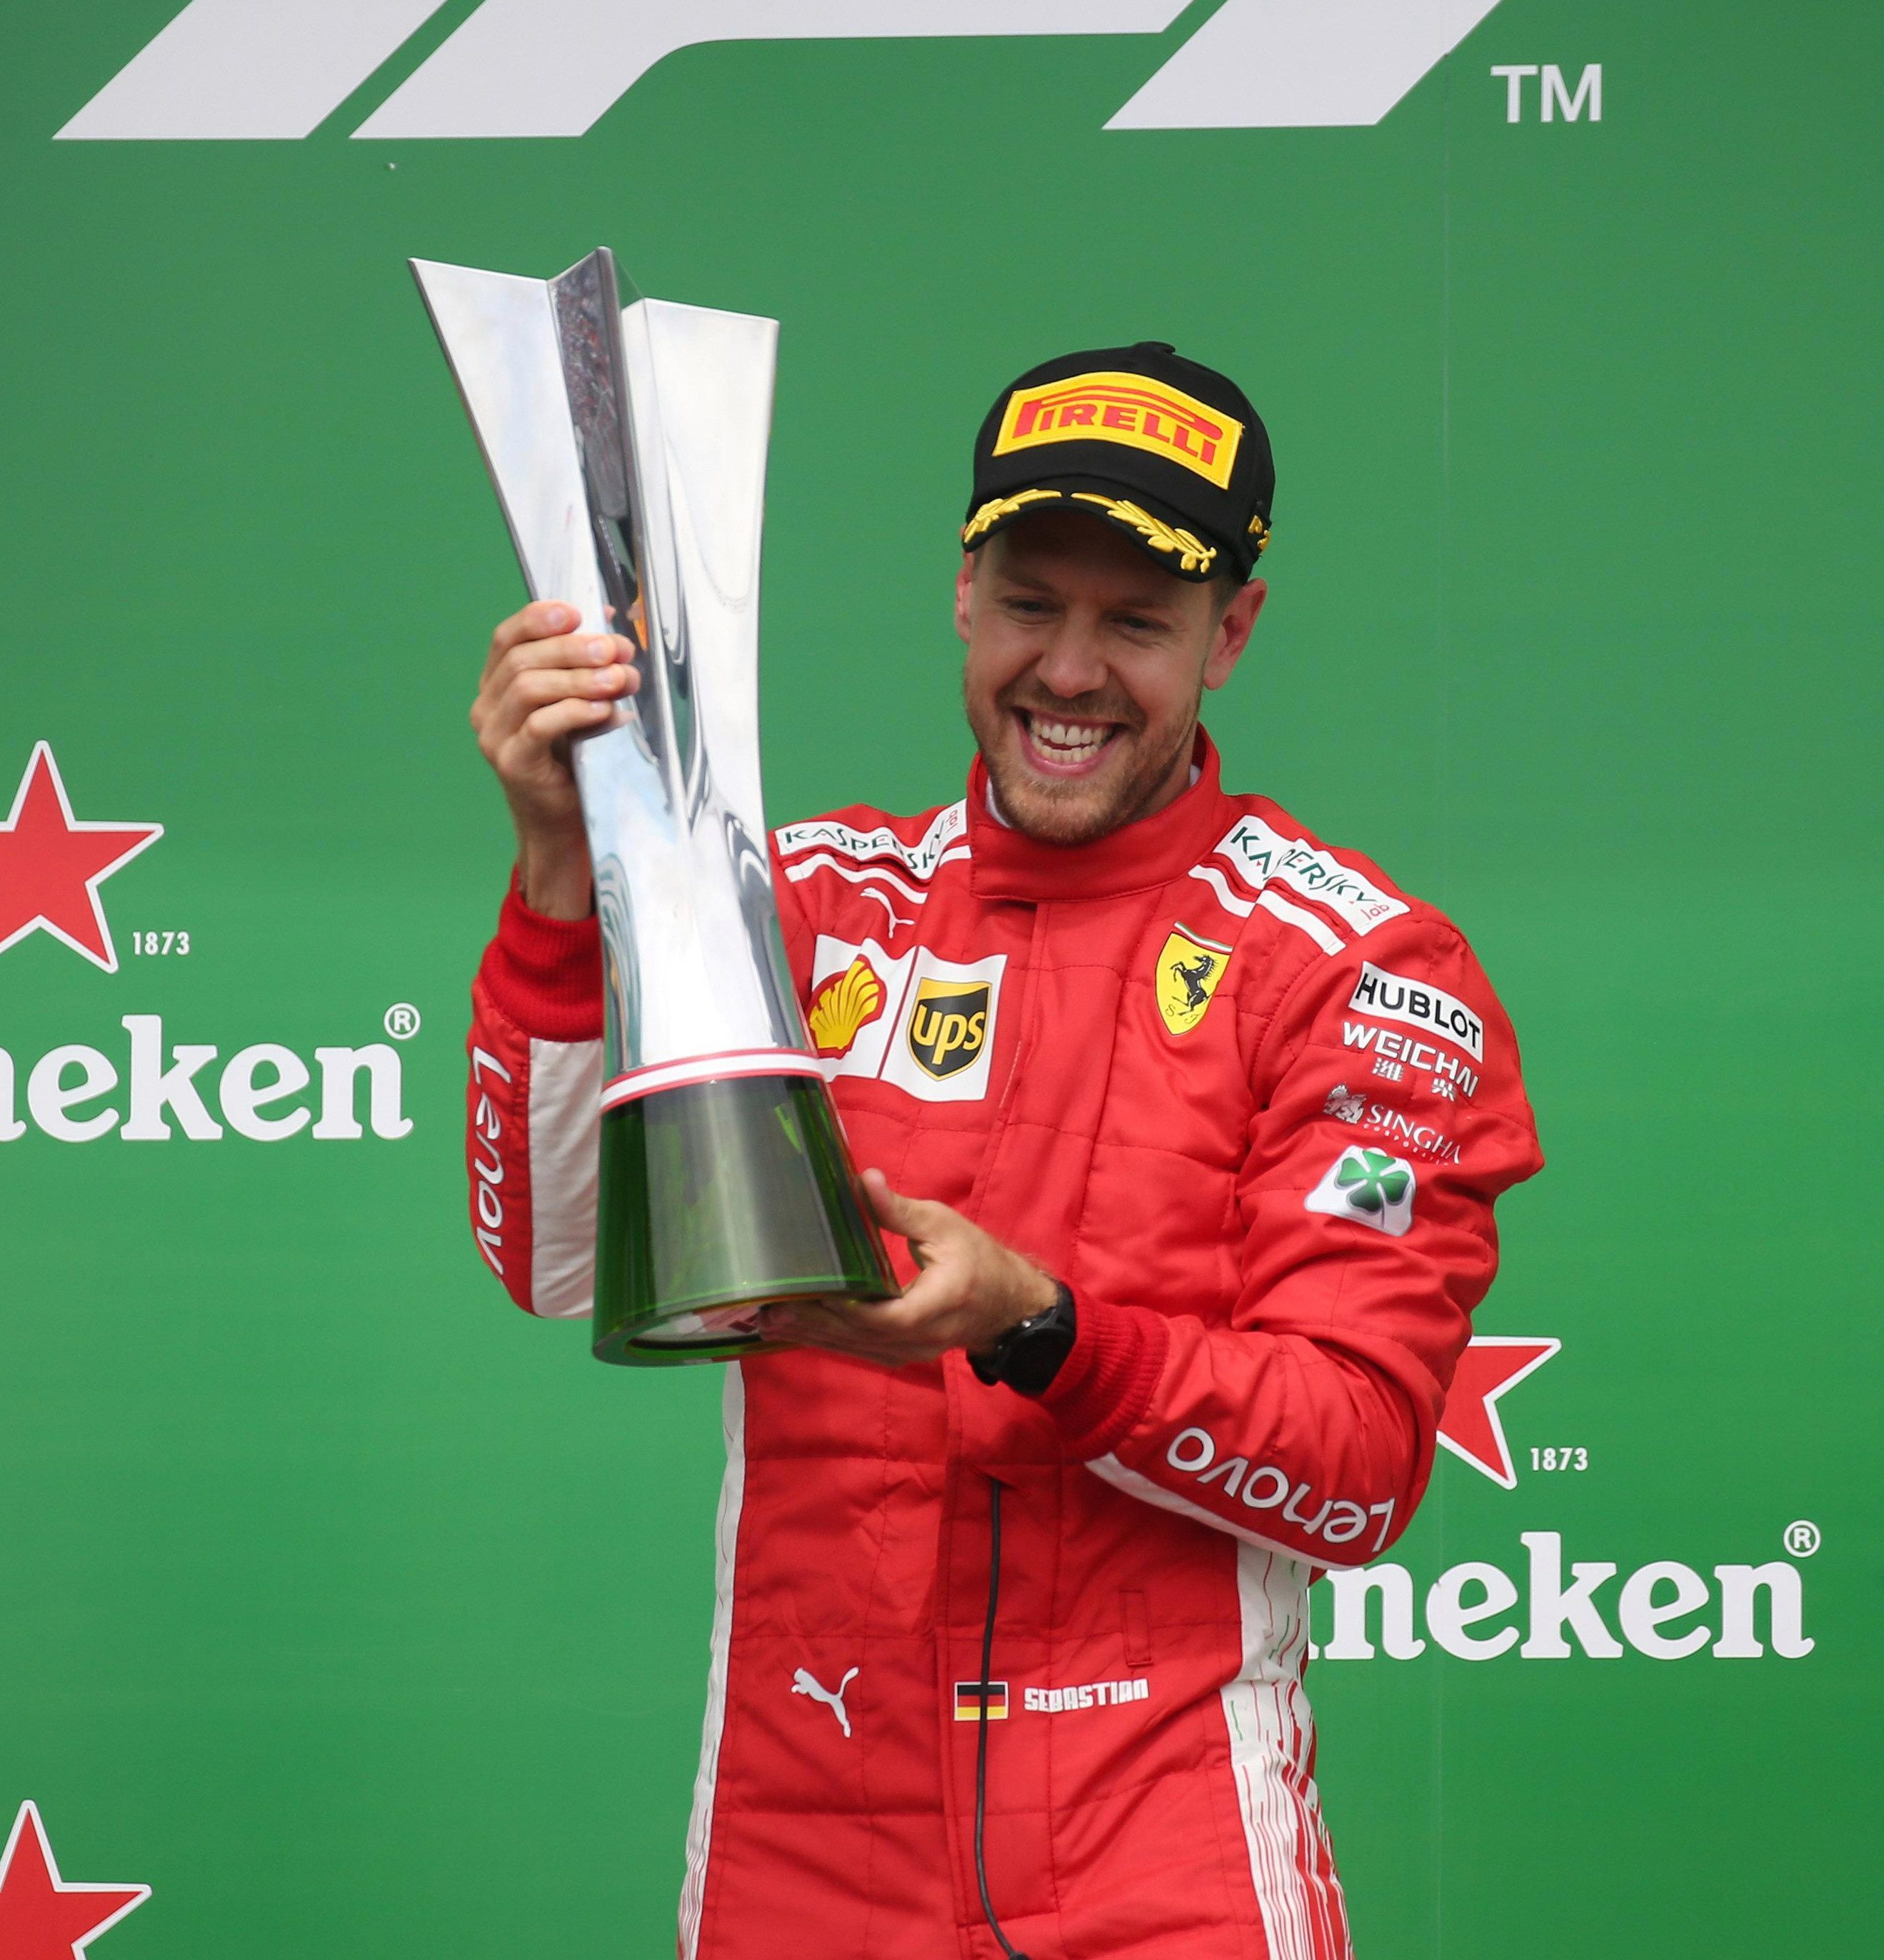 Seb Vettel overtakes Lewis Hamilton at the top of the drivers' championship